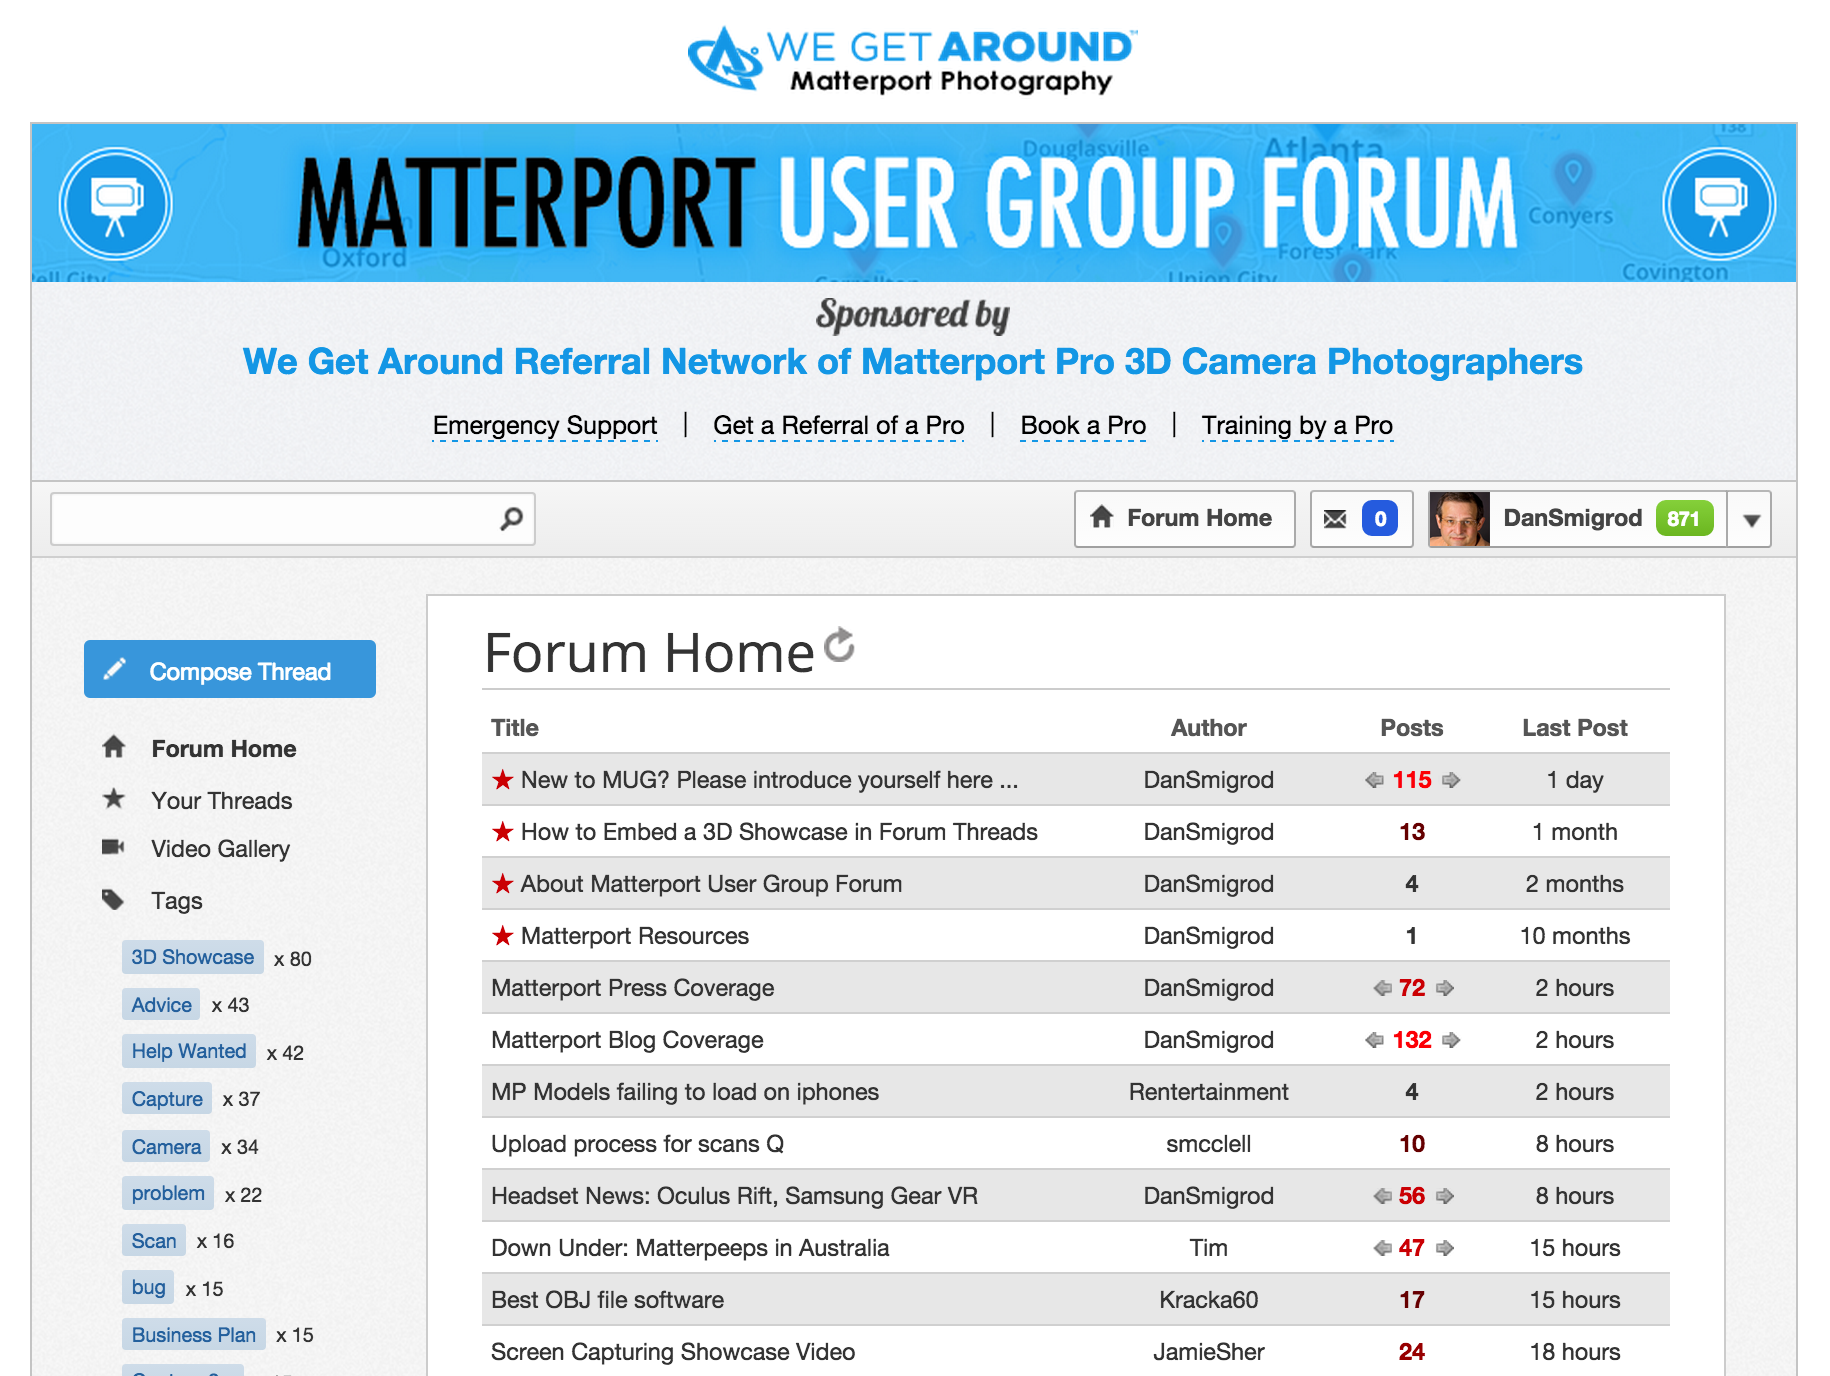 The Matterport User Group Forum (free) is sponsored by the Referral Network of Matterport Pro 3D Camera Photographers and Real Estate Agents – powered by We Get Around. The Forum has hundreds of members from 30 countries.